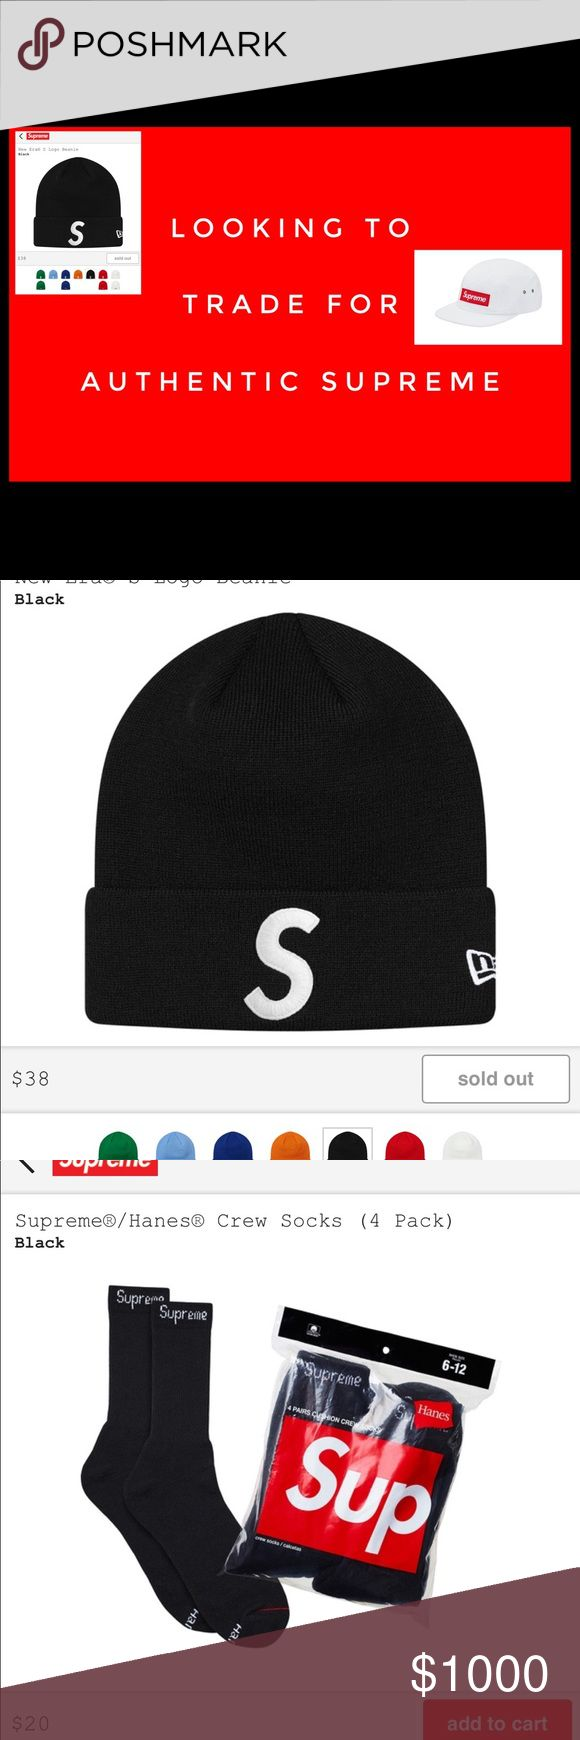 Looking To Trade For Supreme Hats & Accesories Looking To Trade With Honest Poshers for Supreme Items- Preferably Winter Hats And 5 Panel Hats. I am a Respectable Posher. I have over 900 Sales and over 100 Trades. Please comment Below if you would be interested in Trading with Me. To see more of our Unliated Inventory Follow Us on IG @GOLDENBEARGARAGE Supreme Accessories Hats